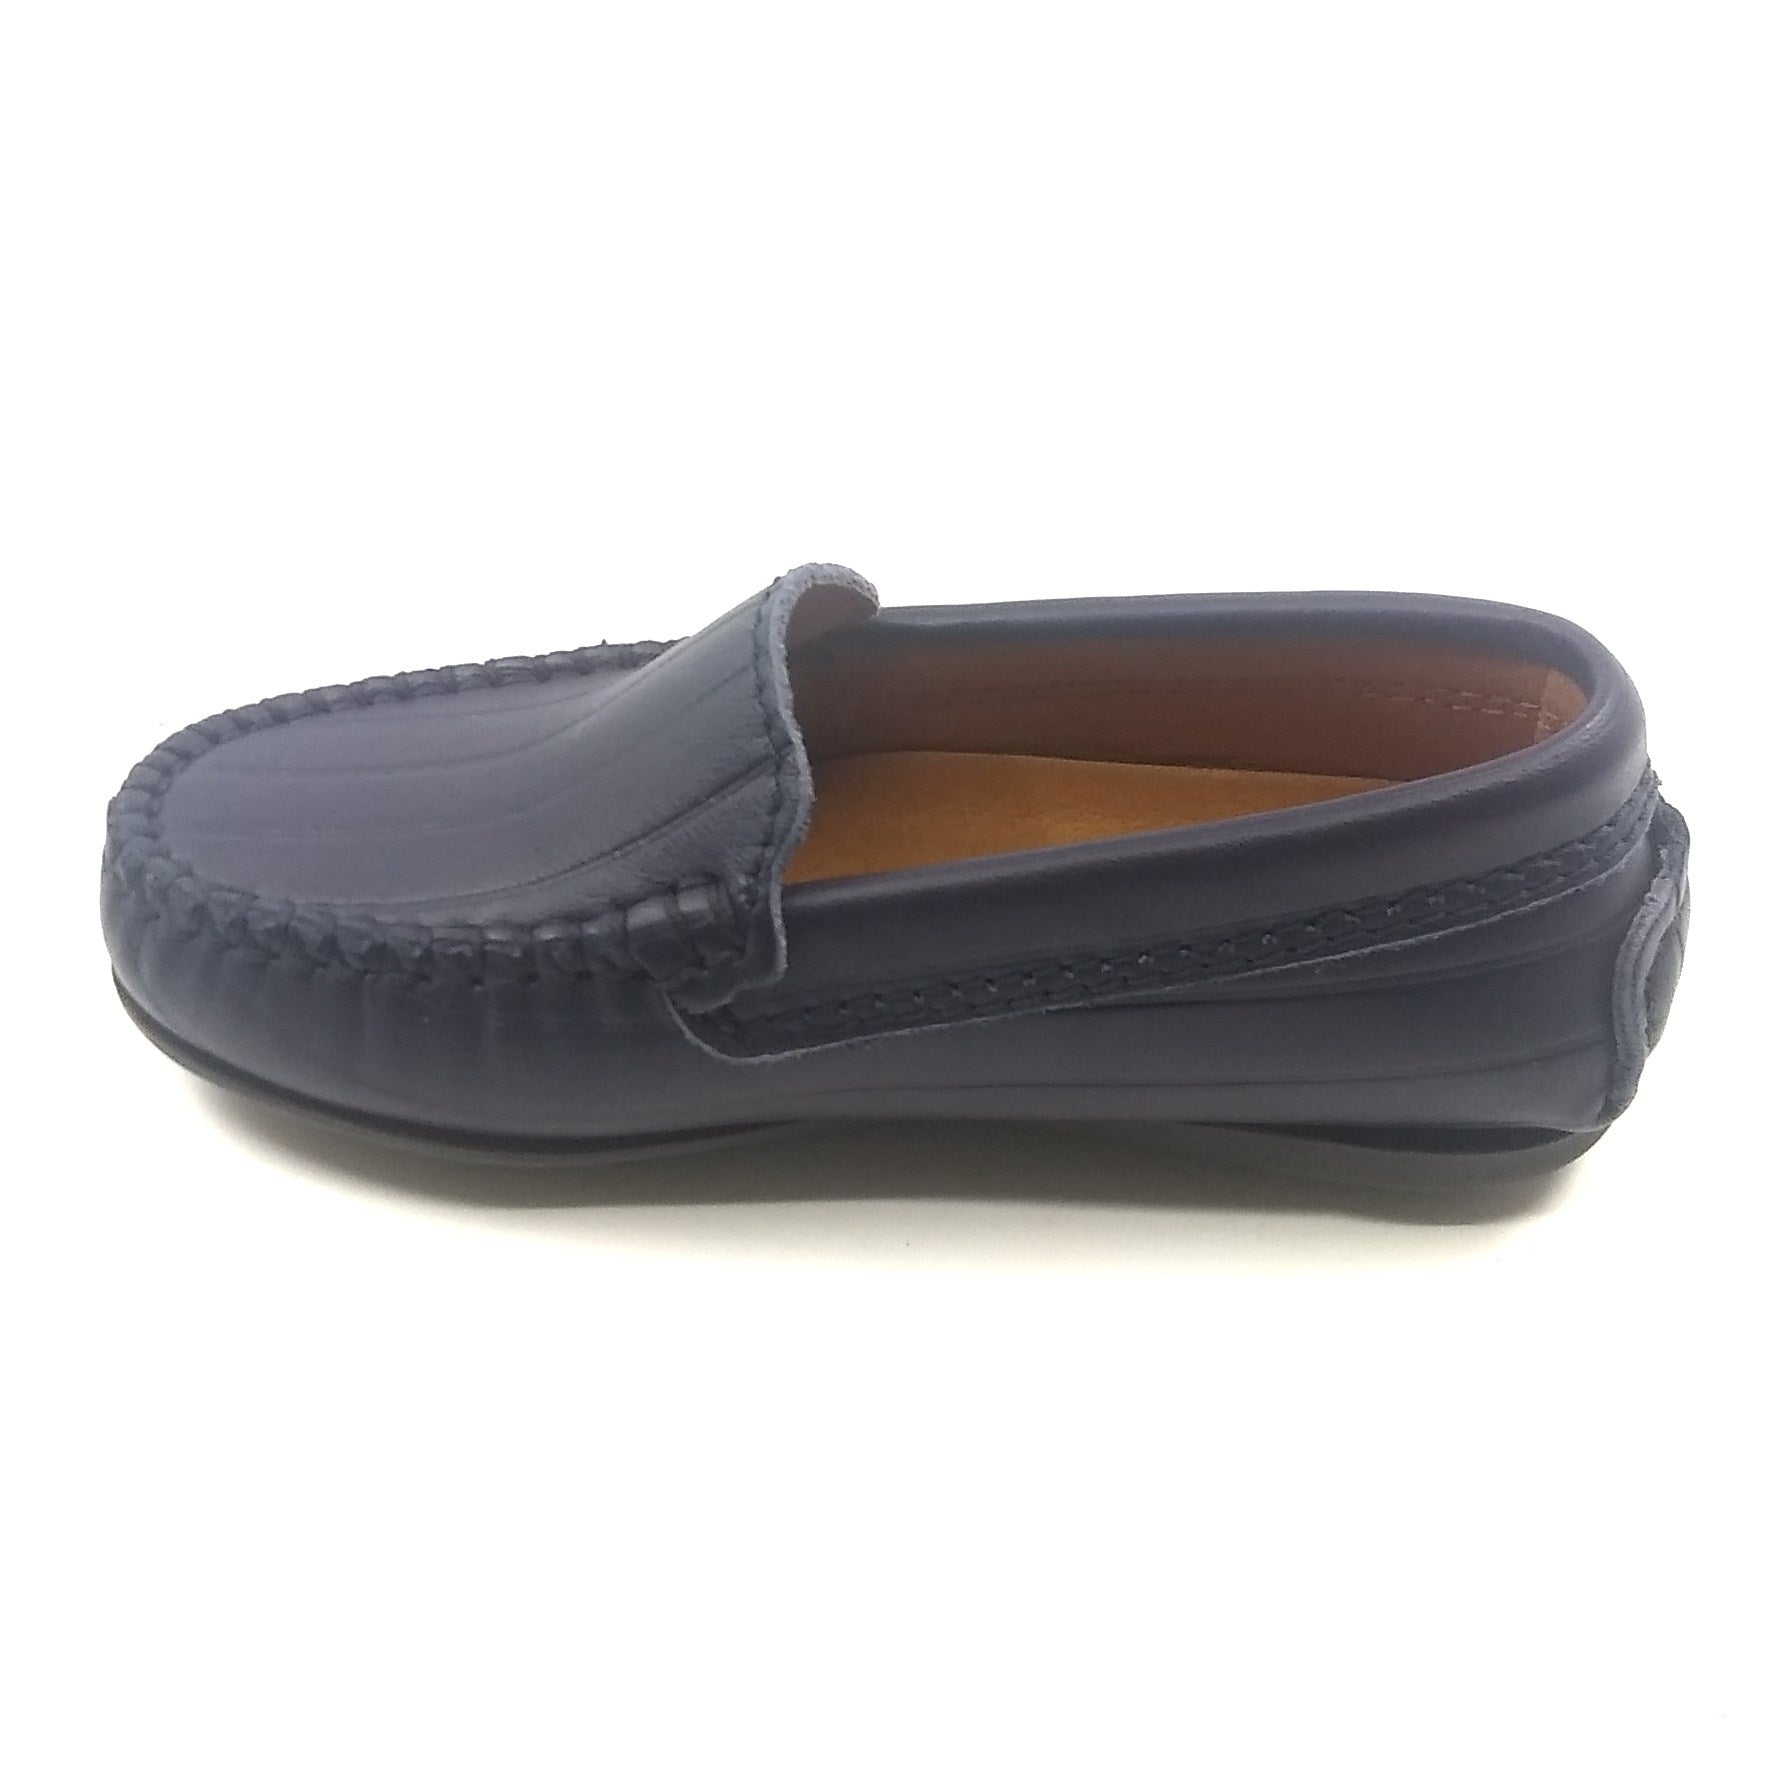 Atlanta Mocassin Navy Loafer